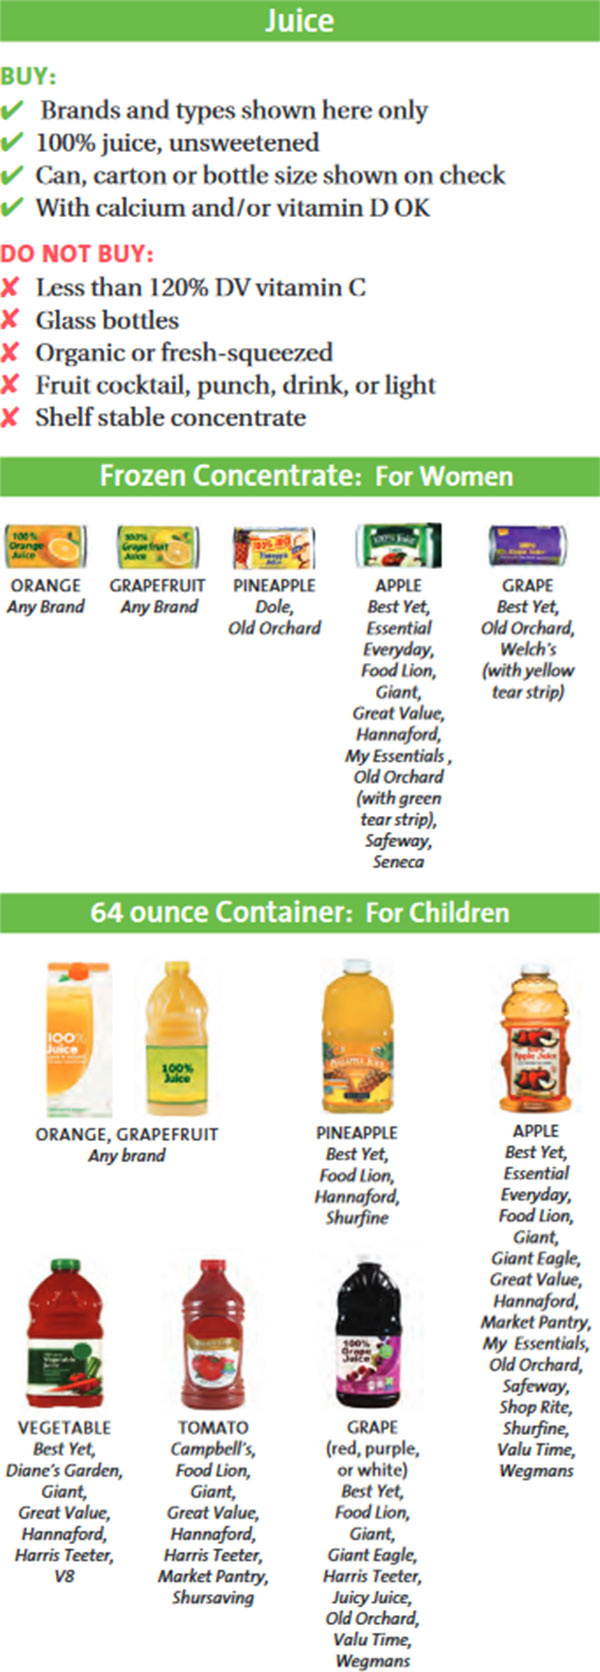 Maryland WIC Food List Juice, Frozen Concentrated For Women and 64oz Container For Children